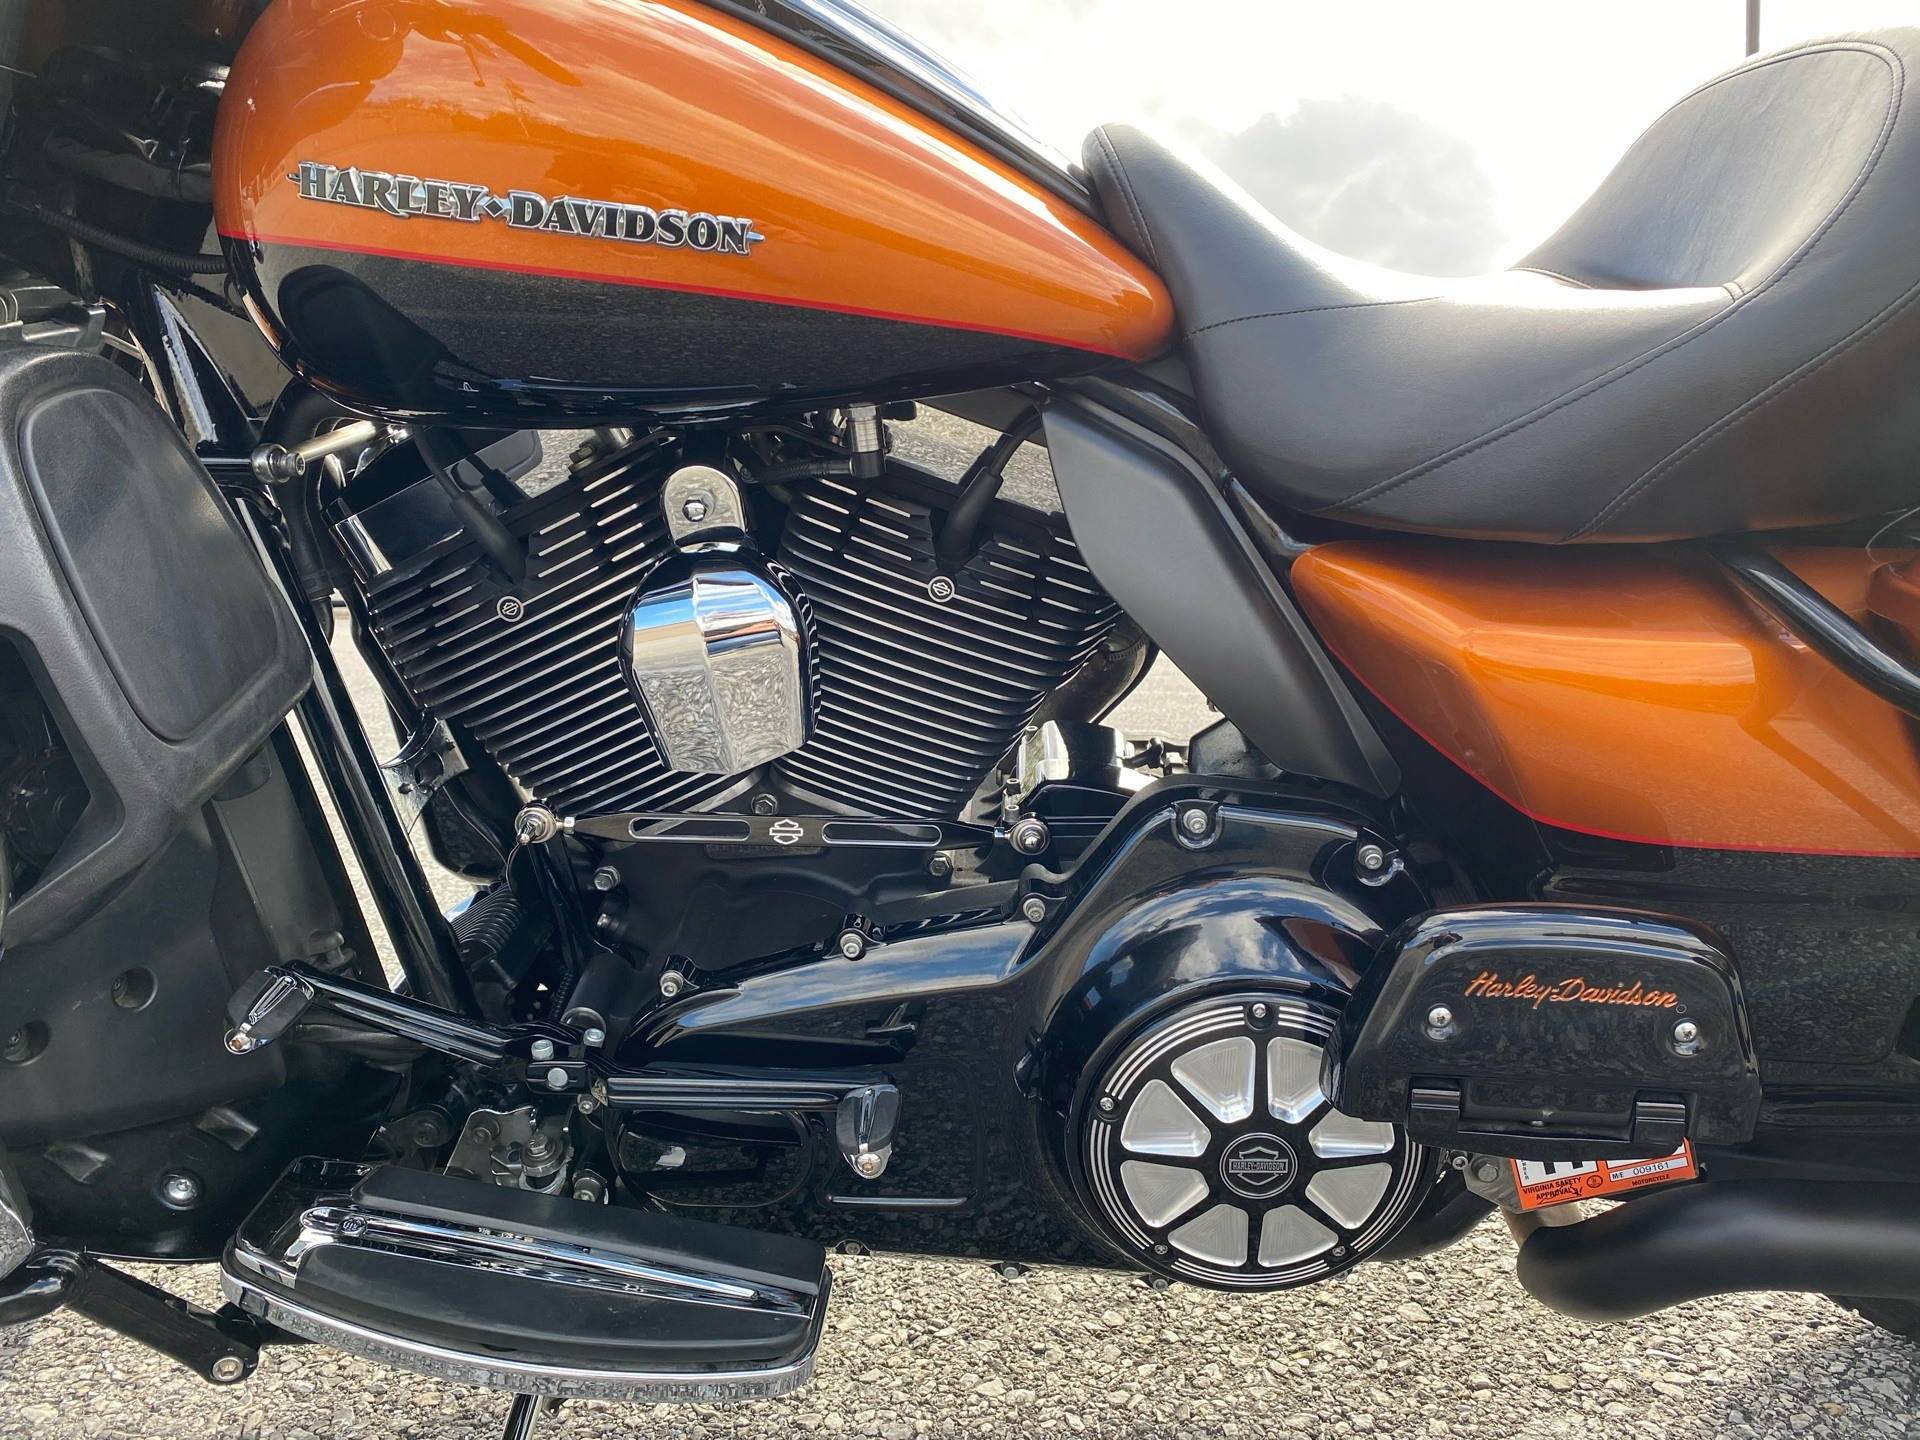 2014 Harley-Davidson Electra Glide Limited in Roanoke, Virginia - Photo 8